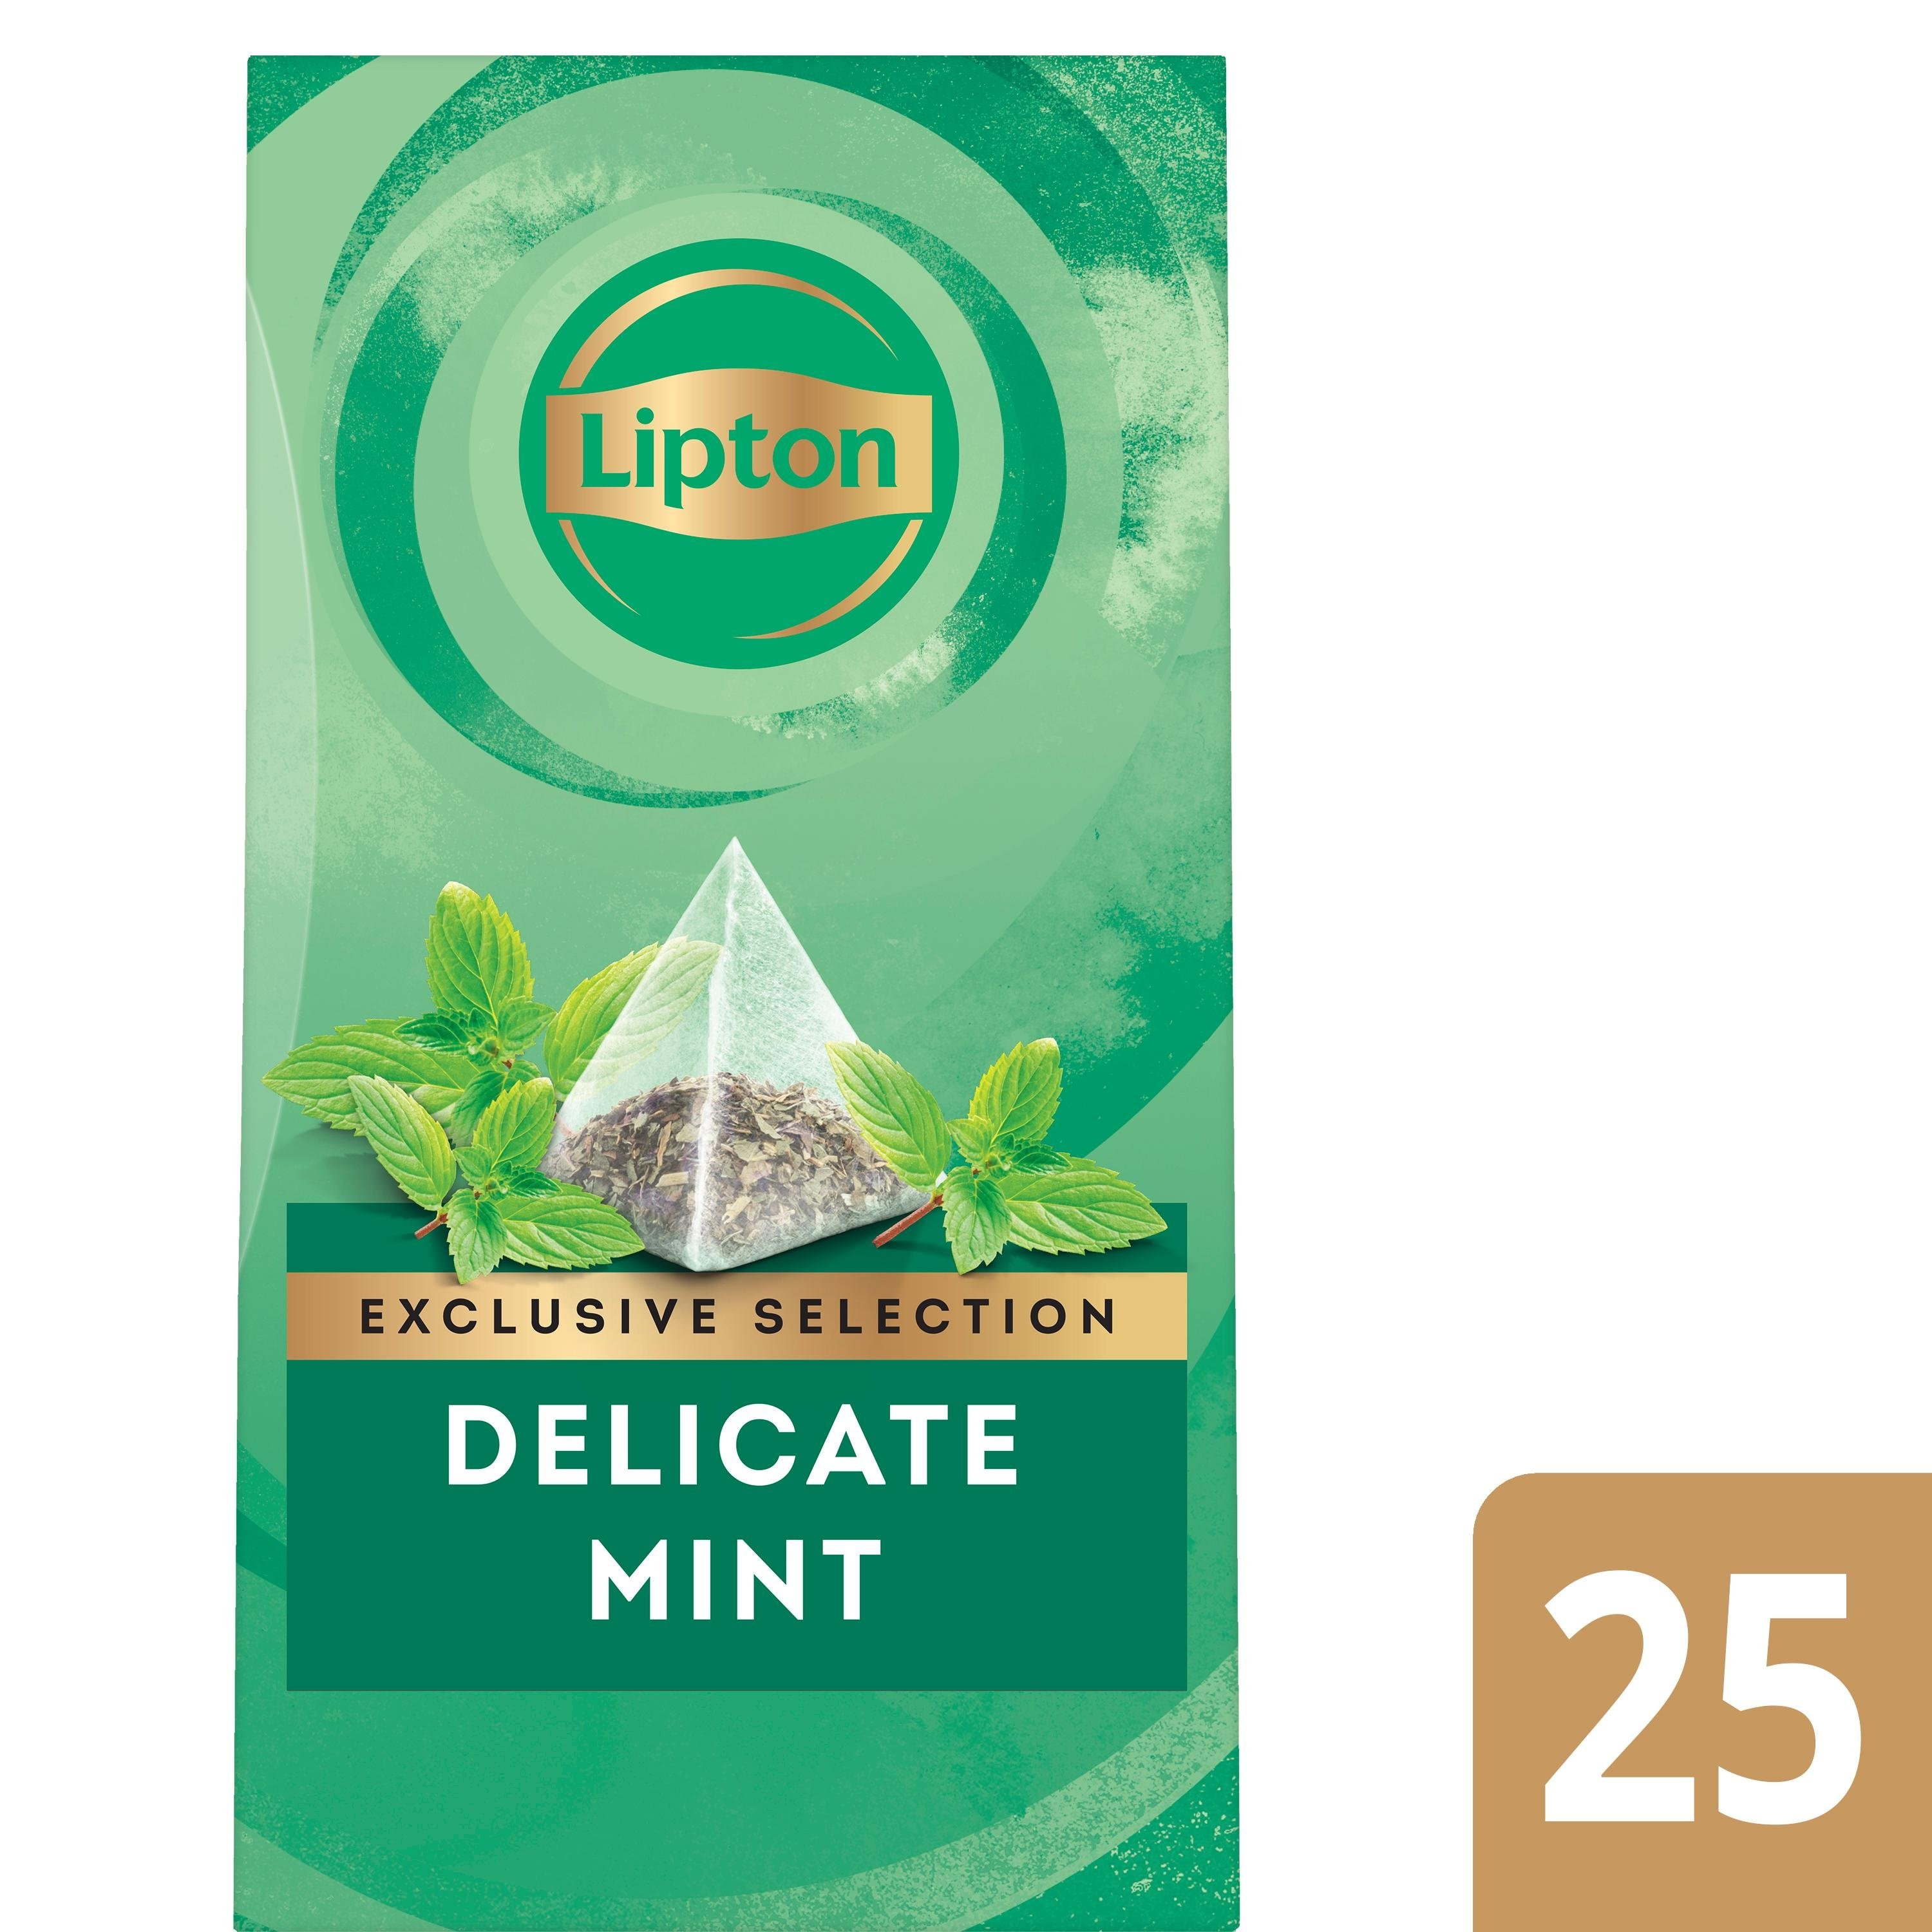 Lipton Exclusive Selection Delicate Mint -